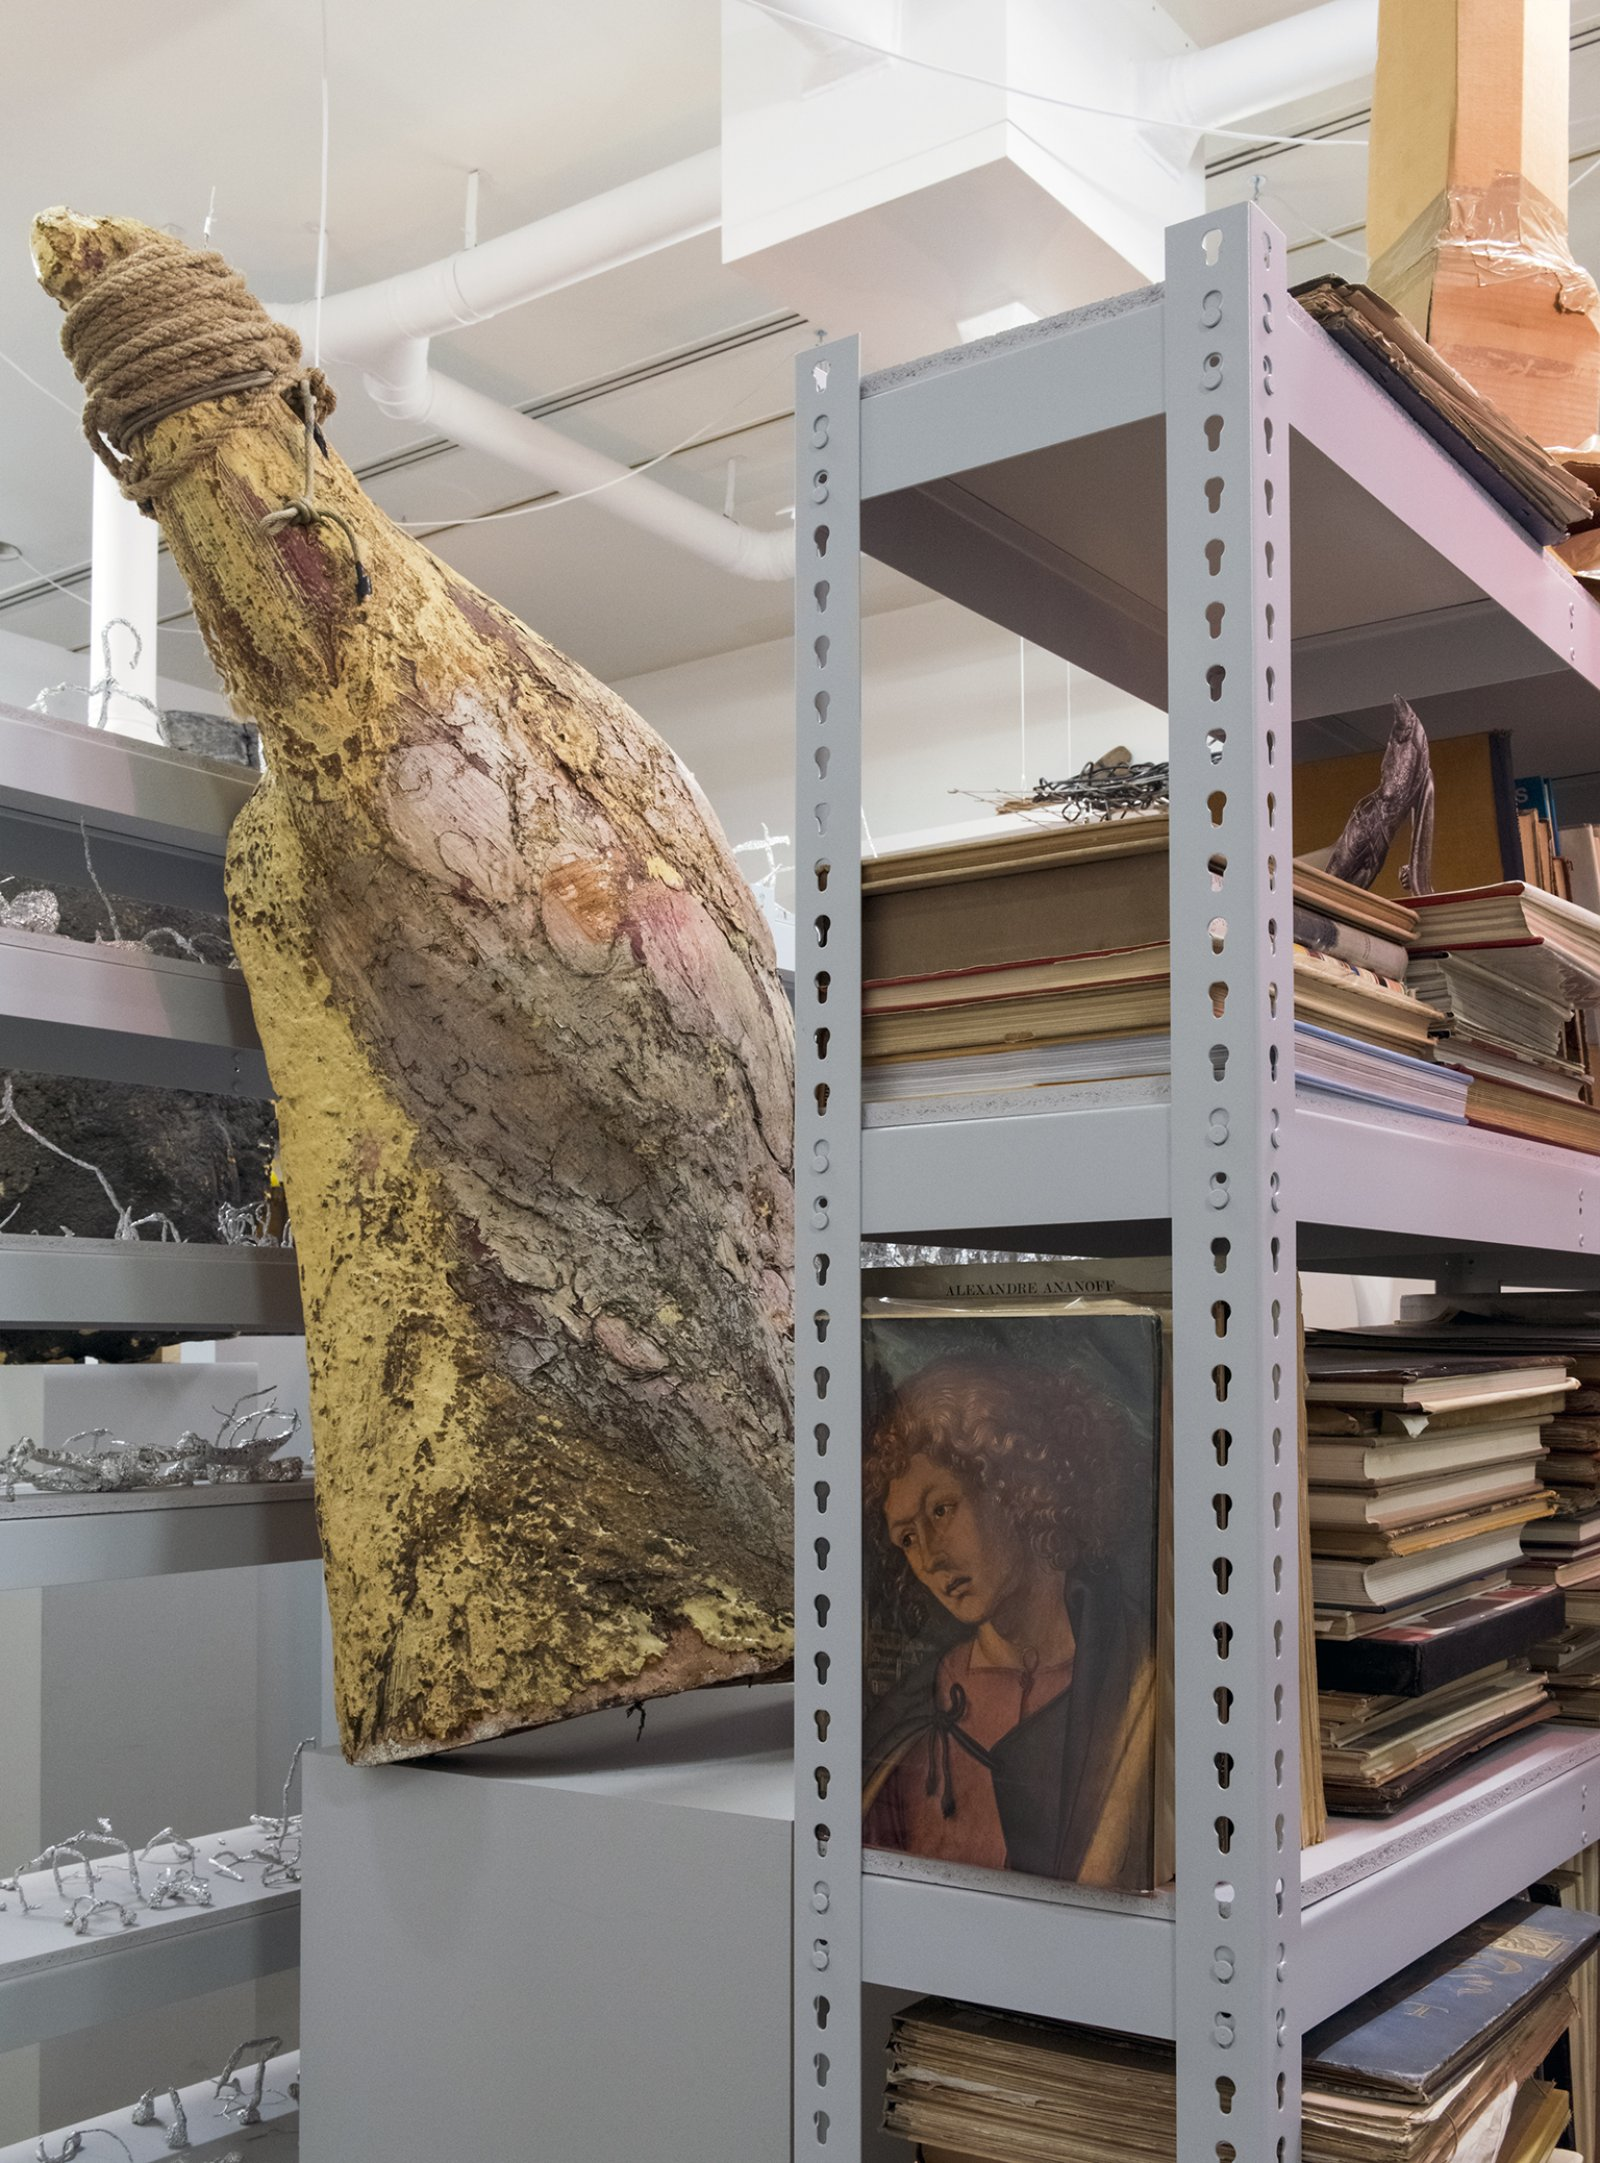 Farmer Storeroom Overture 2015 How Do I Fit This Ghost In My Mouth Vag 2015 Install 05 by Geoffrey Farmer